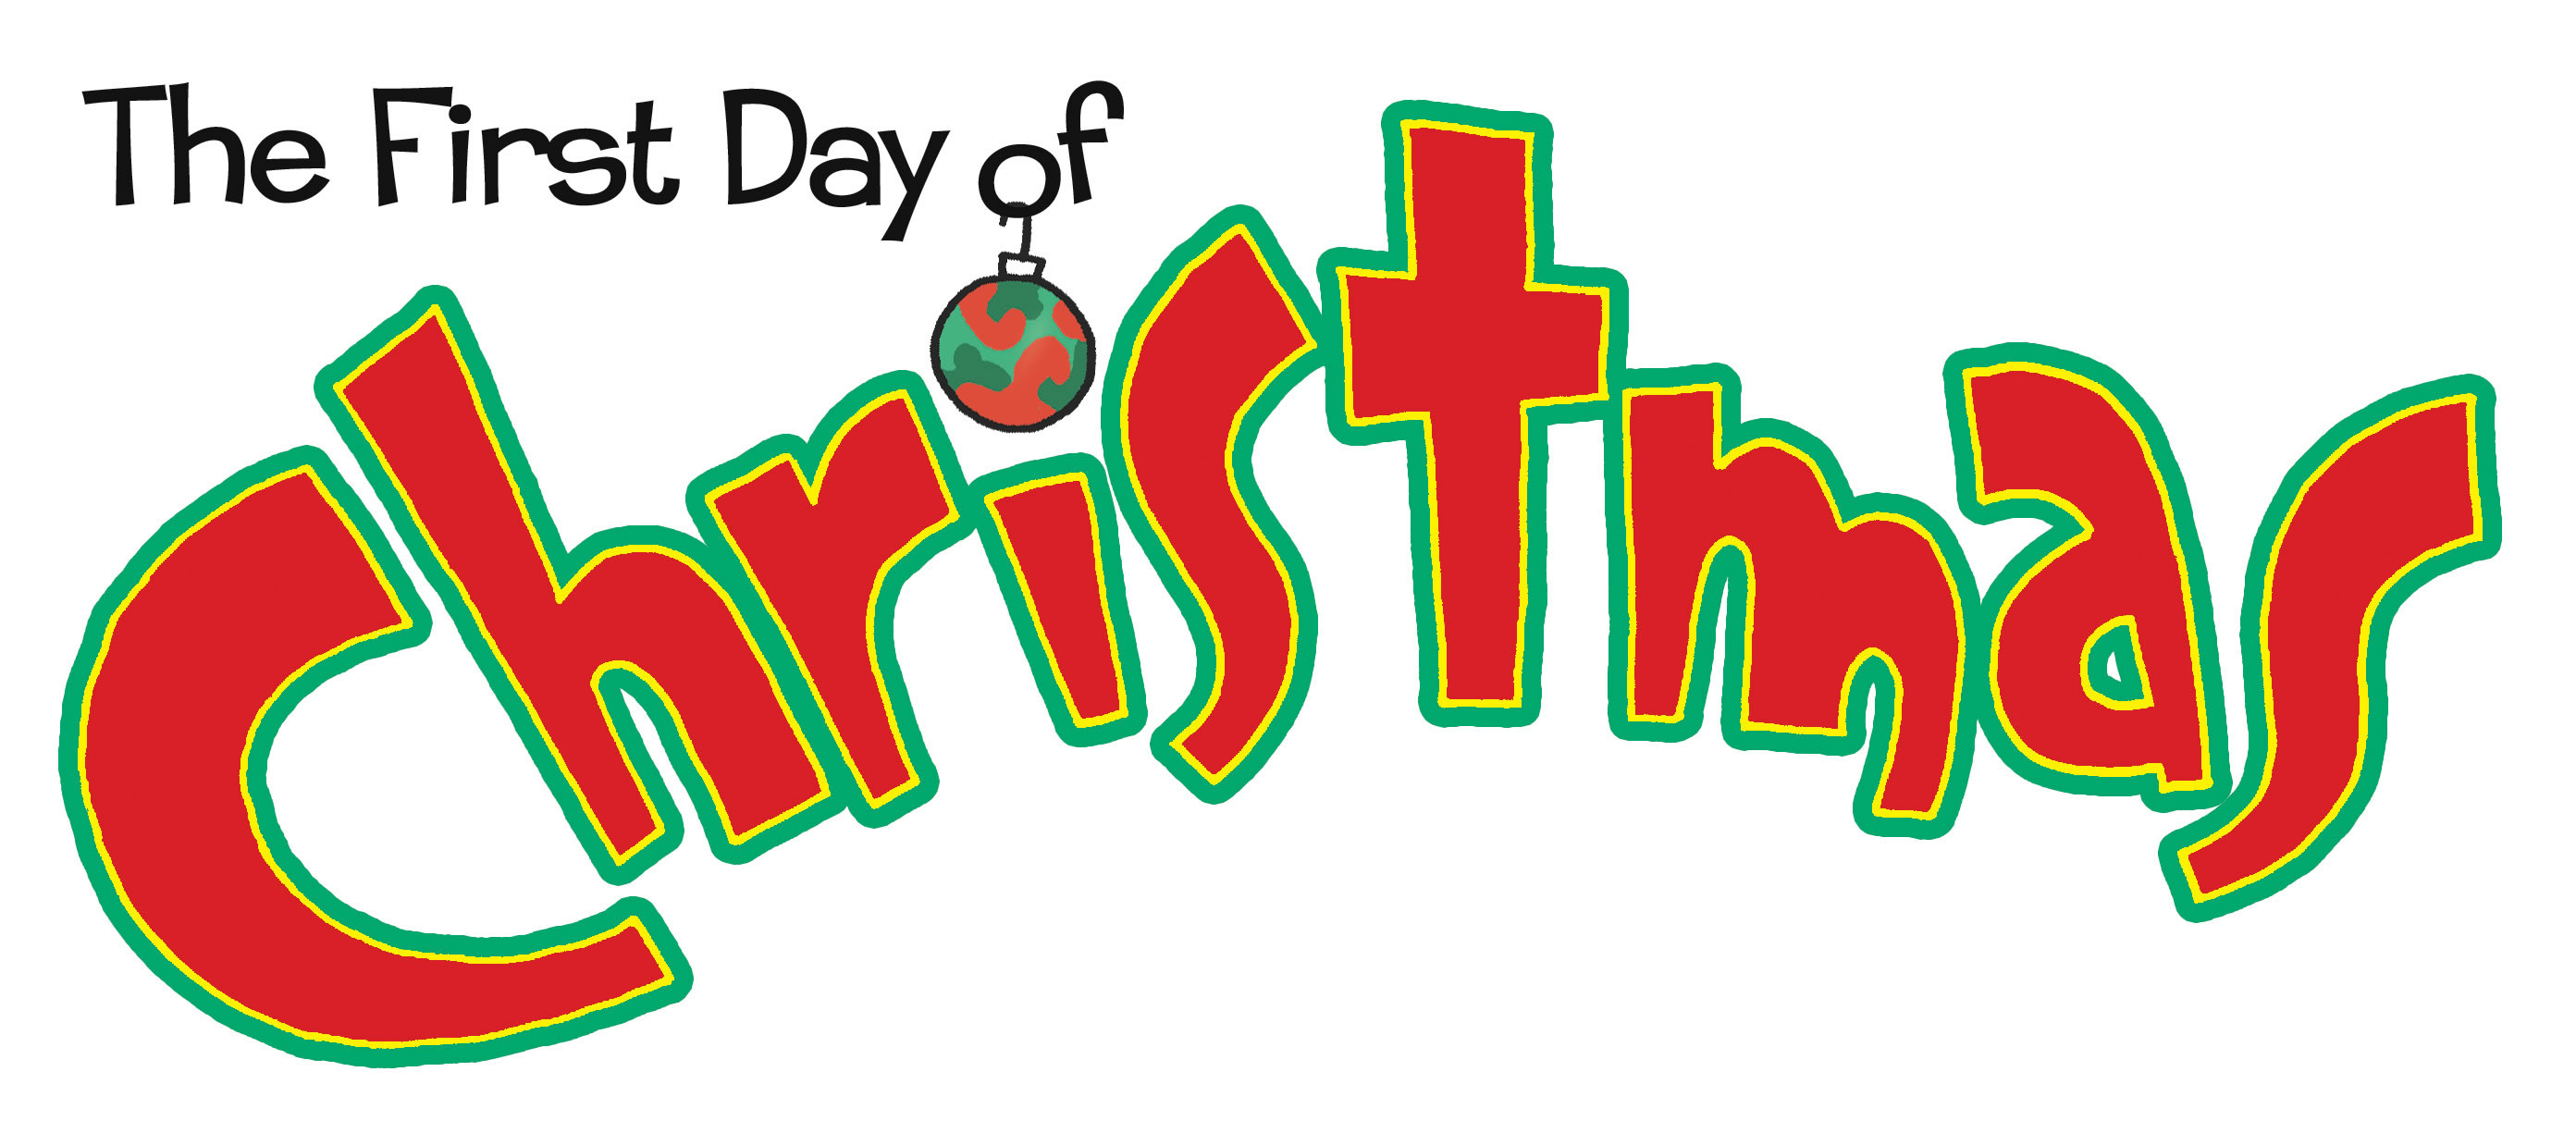 1st Day Of Christmas Clipart